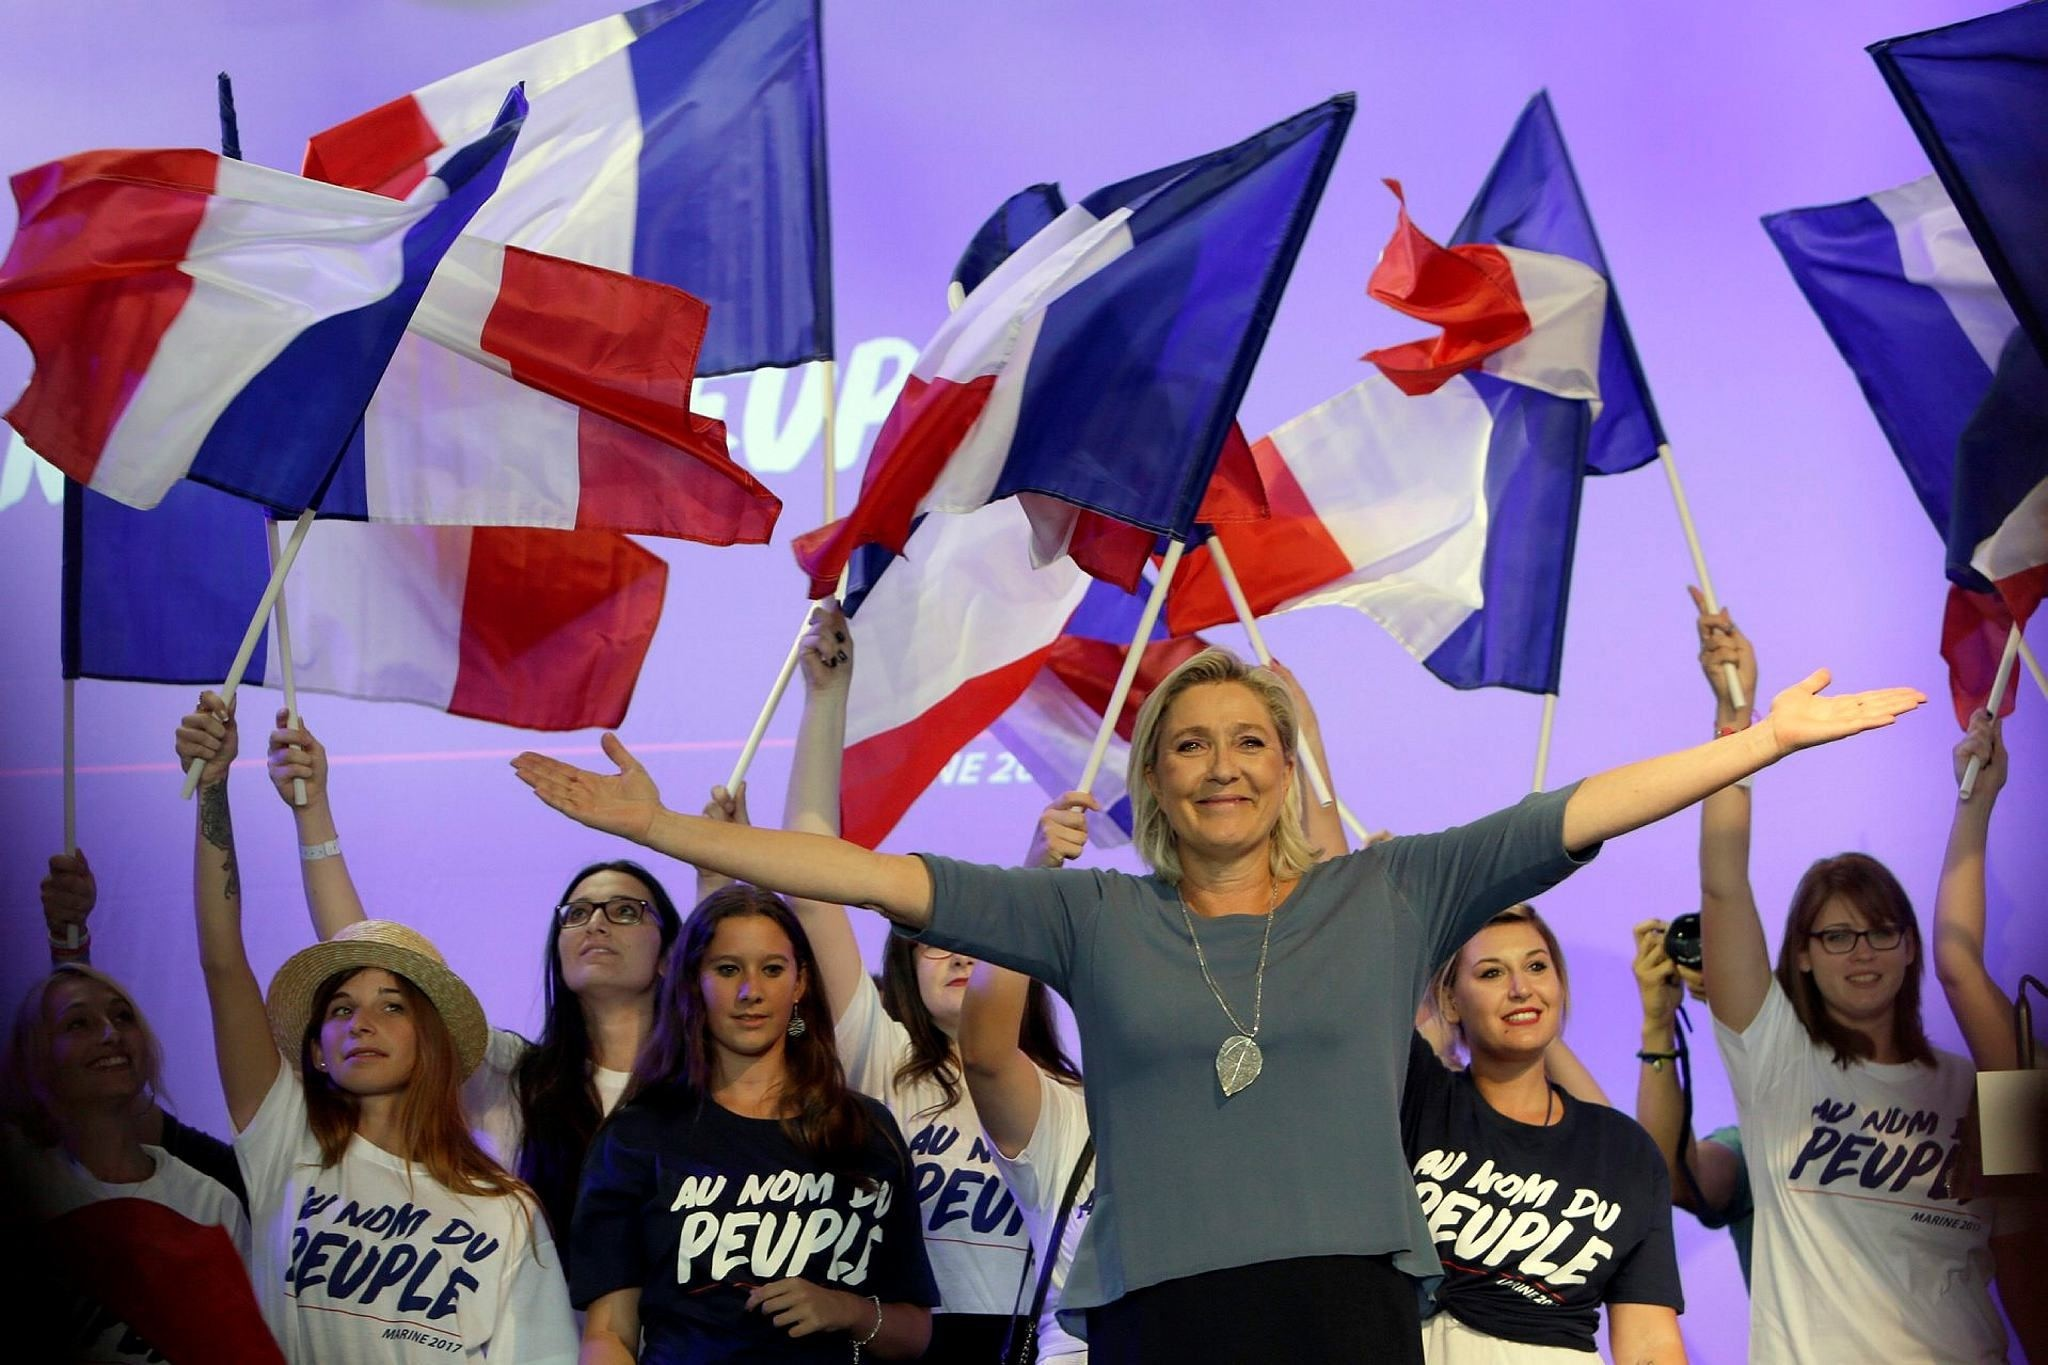 France's far-right National Front president Marine Le Pen waves to supporters during a summer meeting in Frejus, southern France.